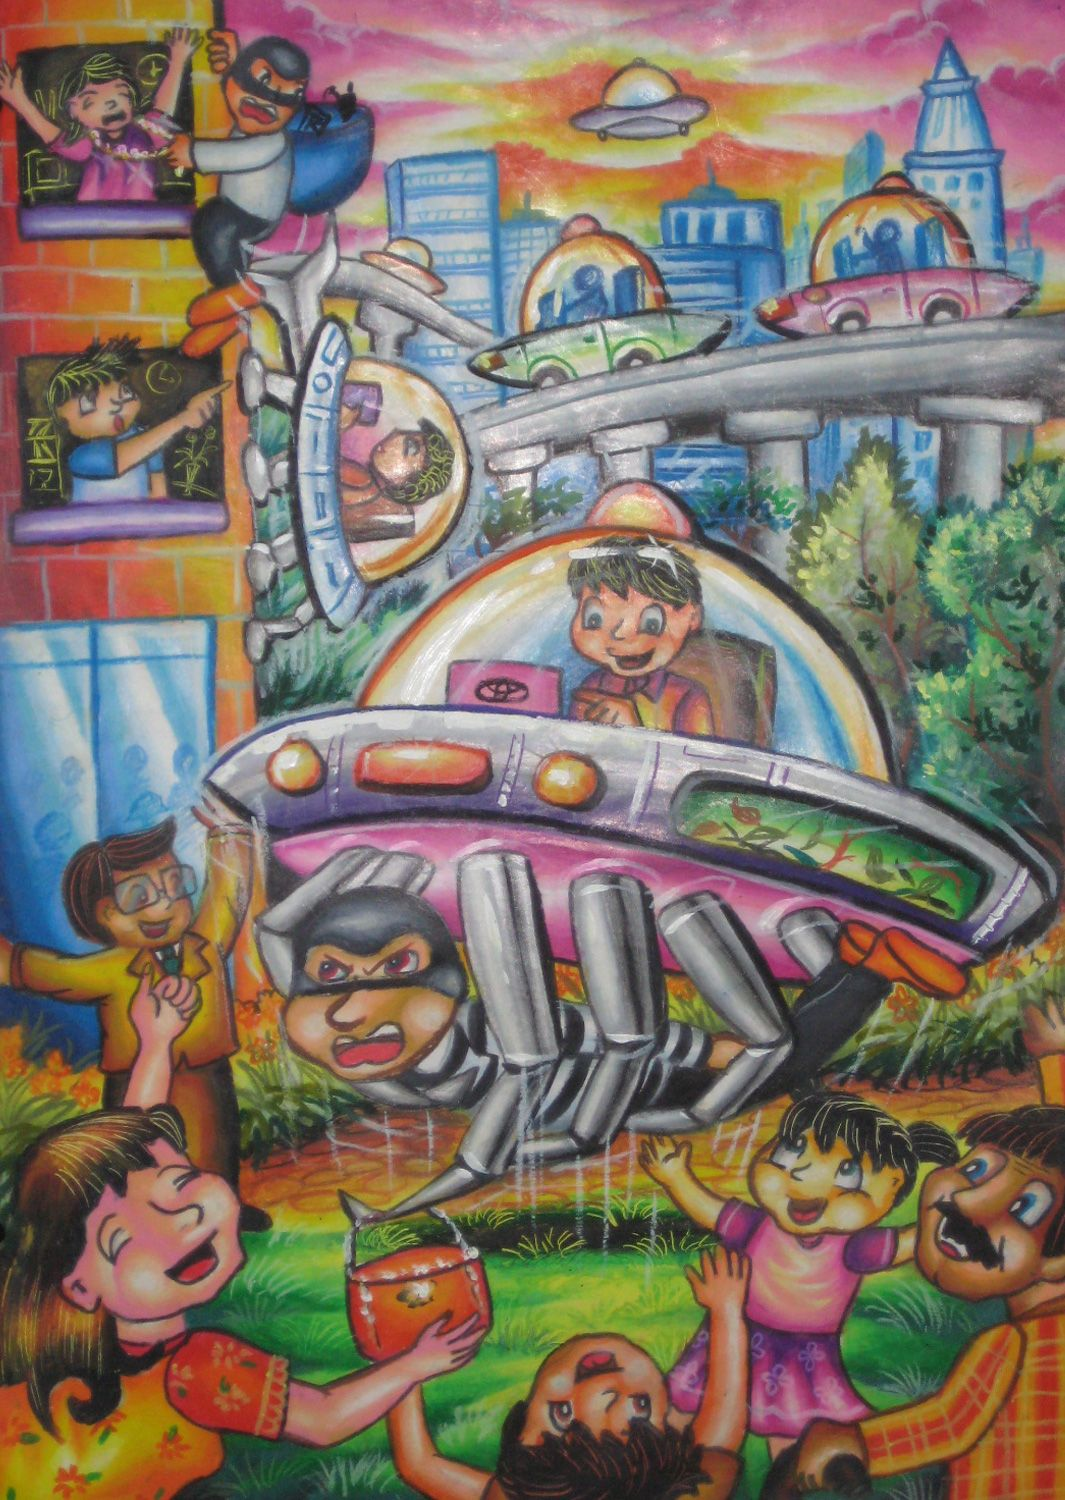 'Security Car' by Stanley Orlando, Aged 11, Indonesia: 4th Contest, Bronze #KidsArt #ToyotaDreamCar